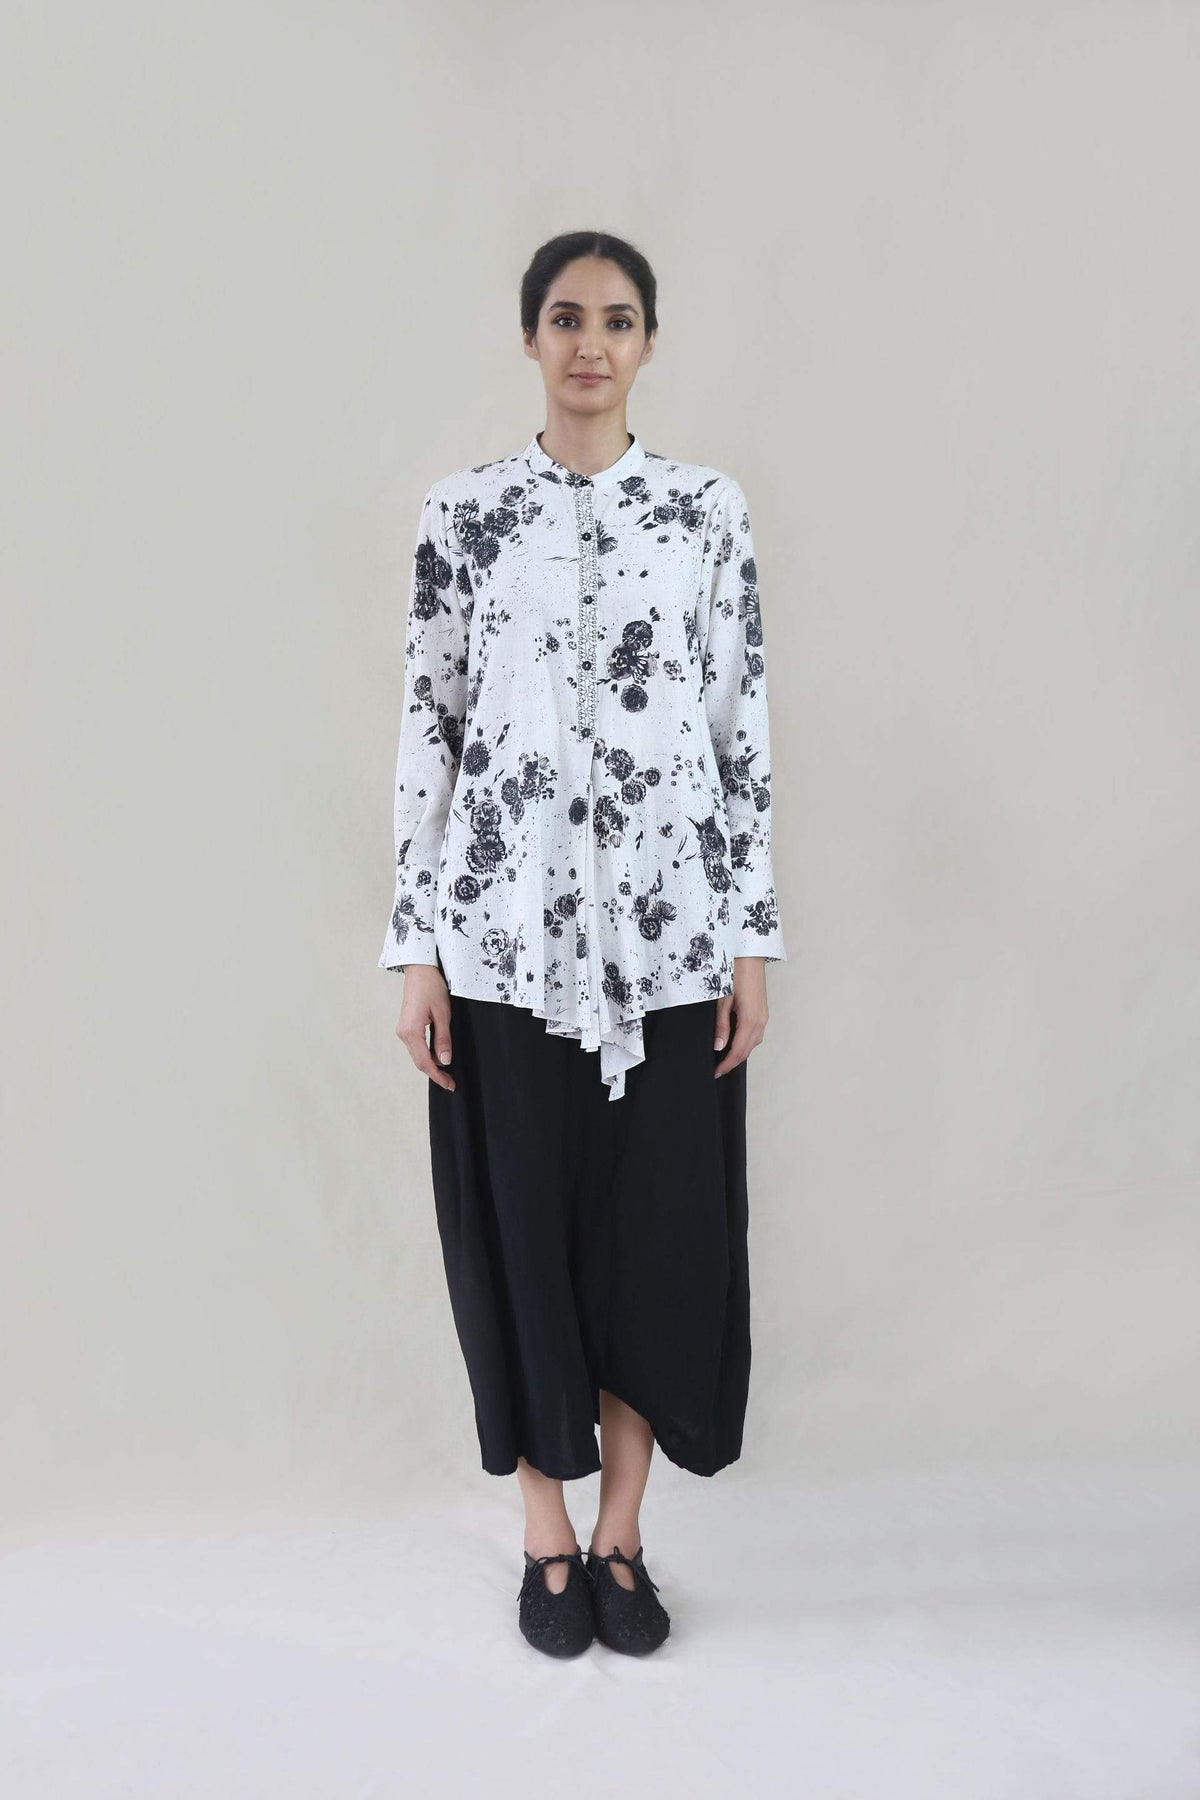 Integument Shirts & Tops Asymmetric khadi shirt